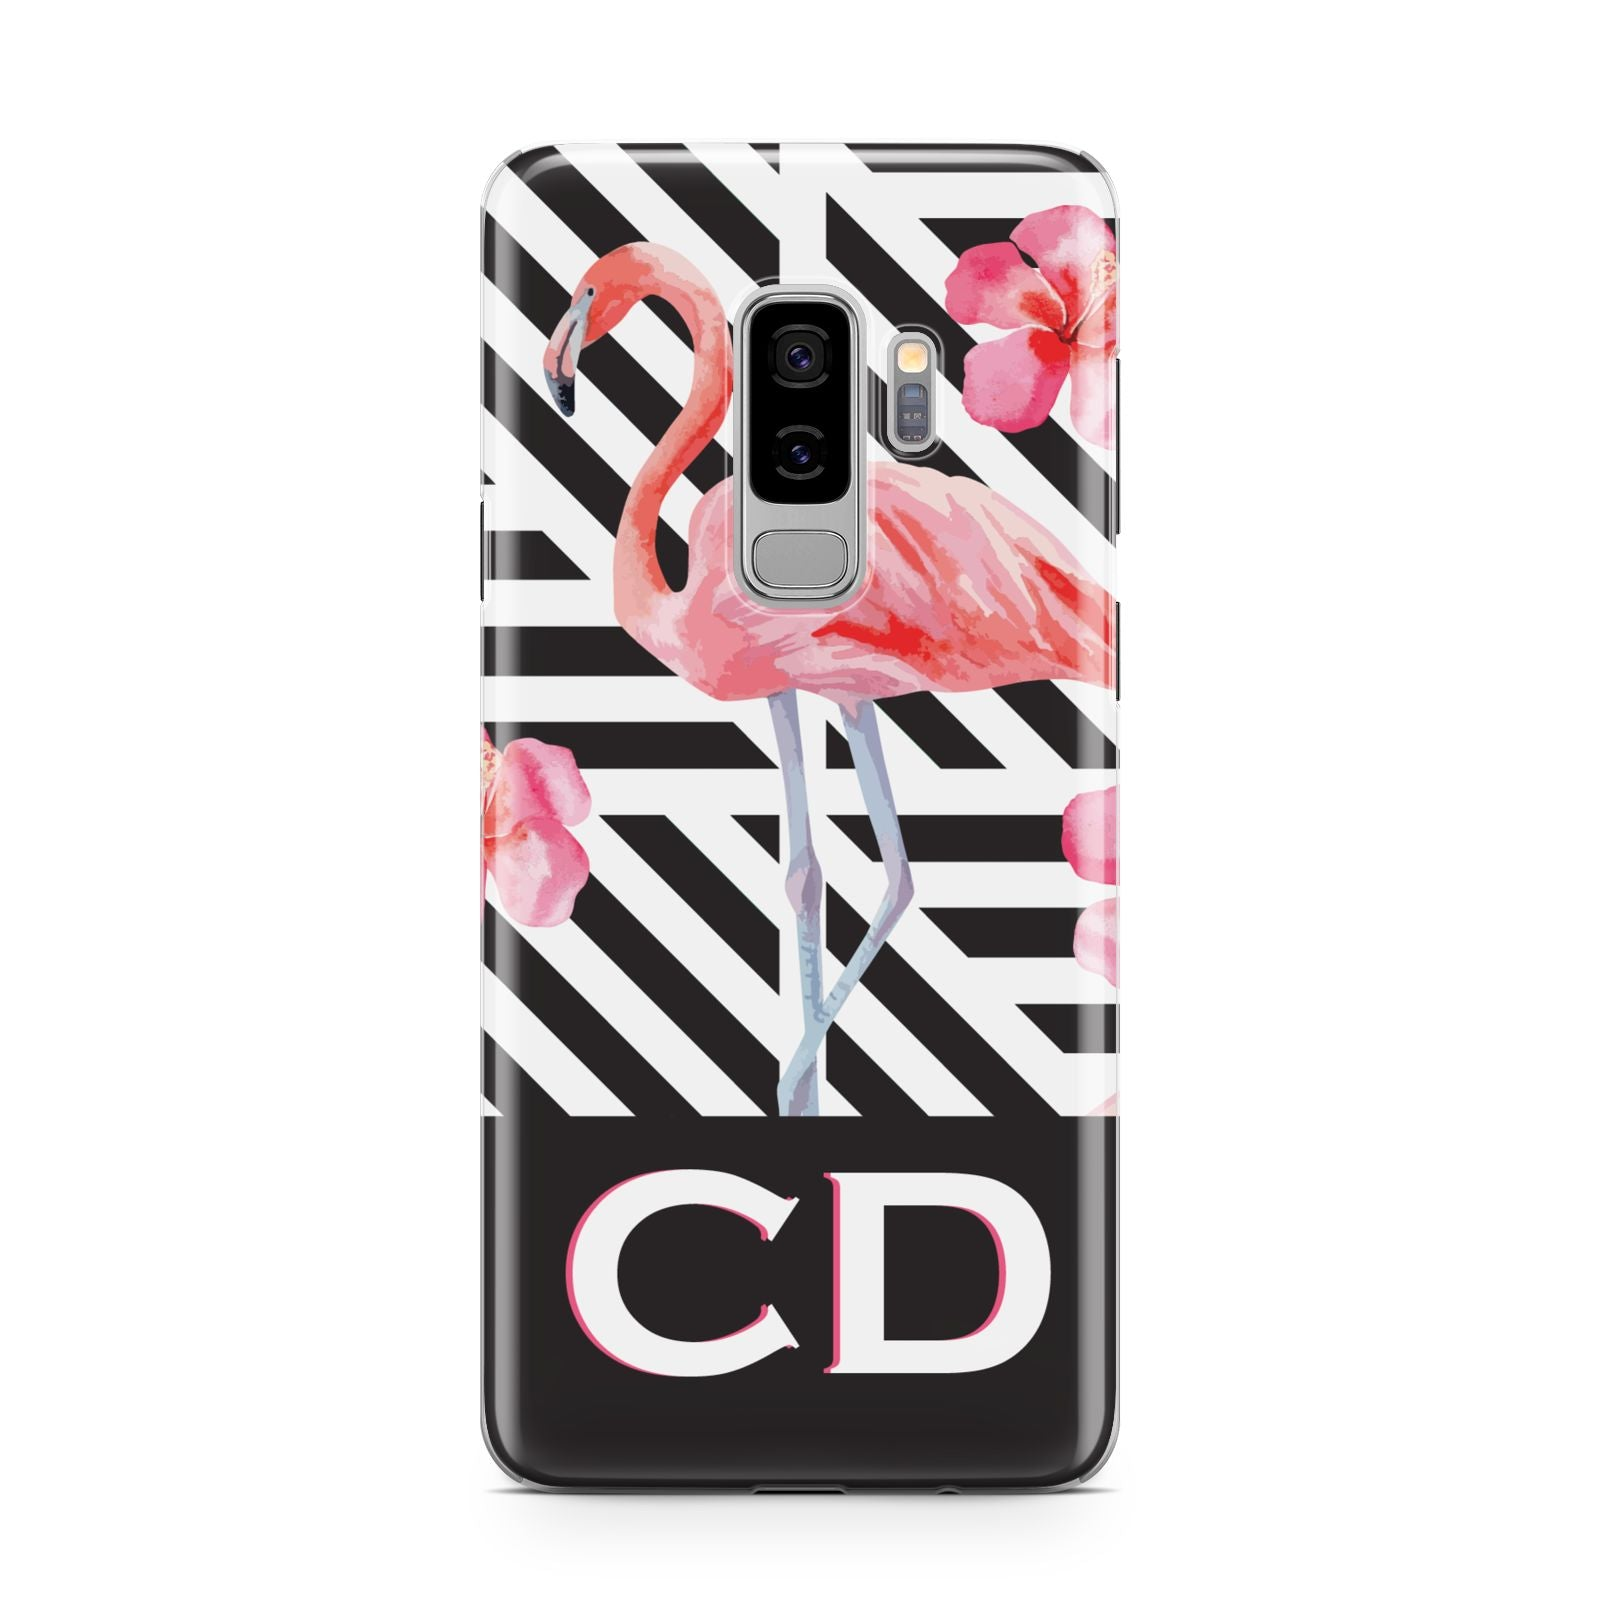 Flamingo Black Geometric Samsung Galaxy S9 Plus Case on Silver phone